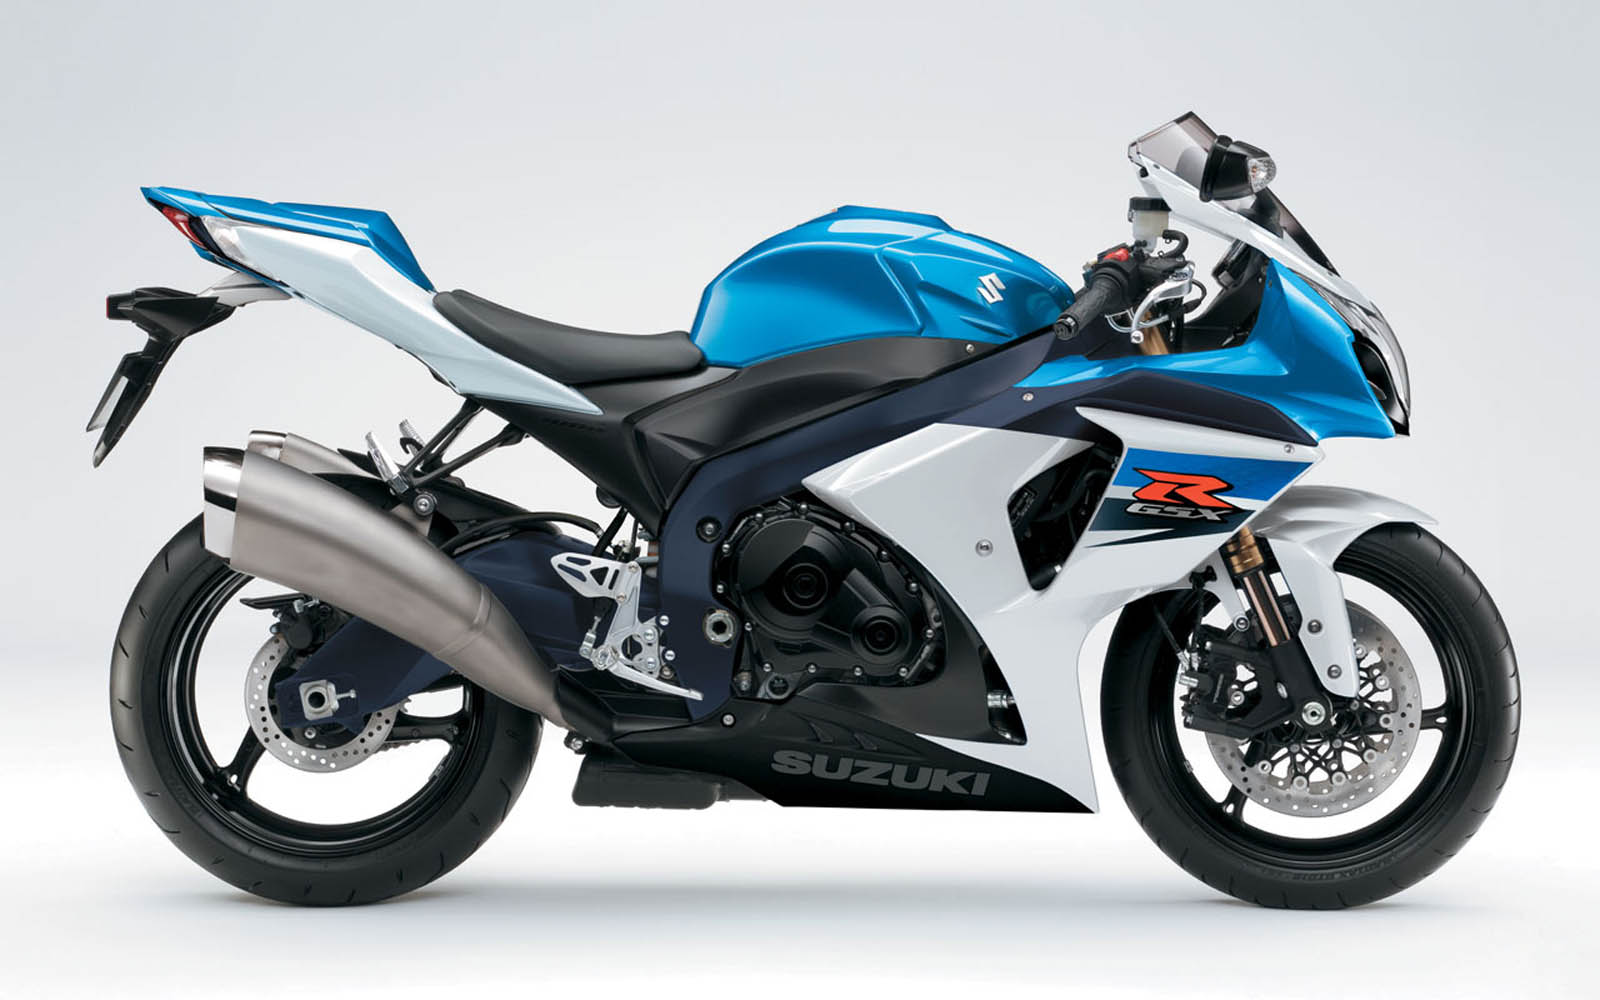 wallpapers Suzuki GSX R1000 Bike Wallpapers